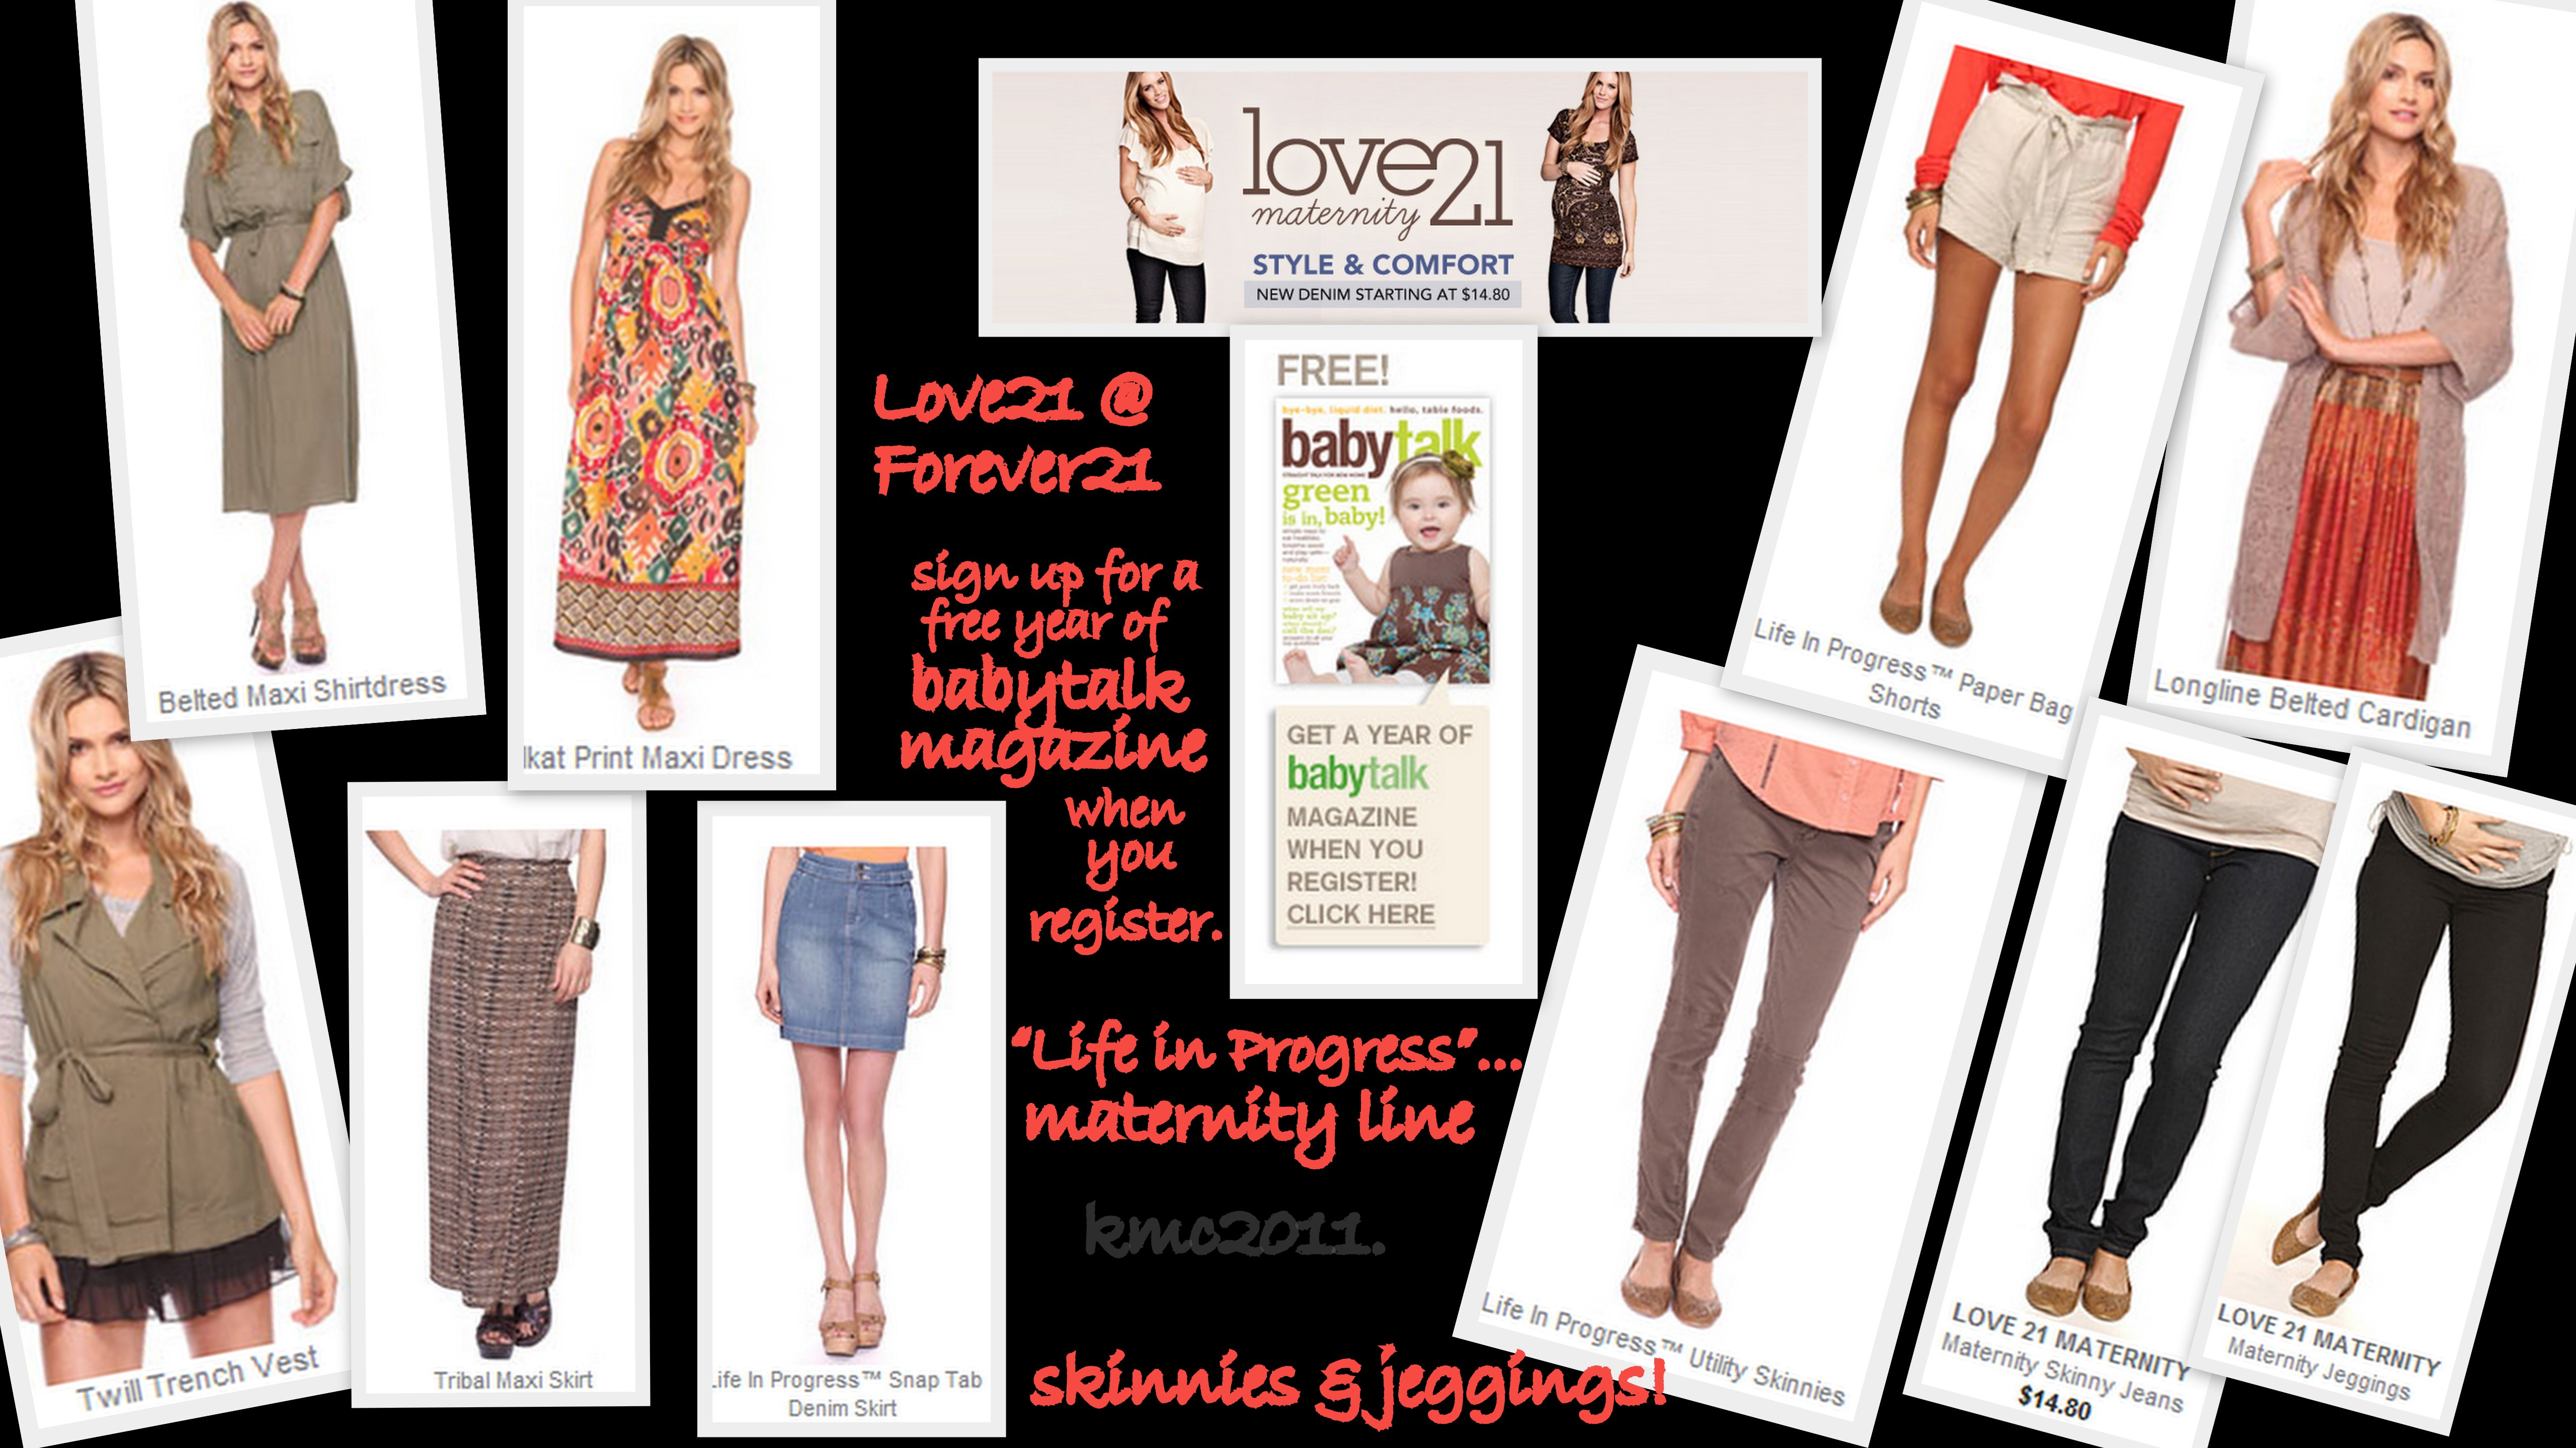 5351462b70e2a Why Do People Buy and Wear Those Things? Forever21.com…Are You ...